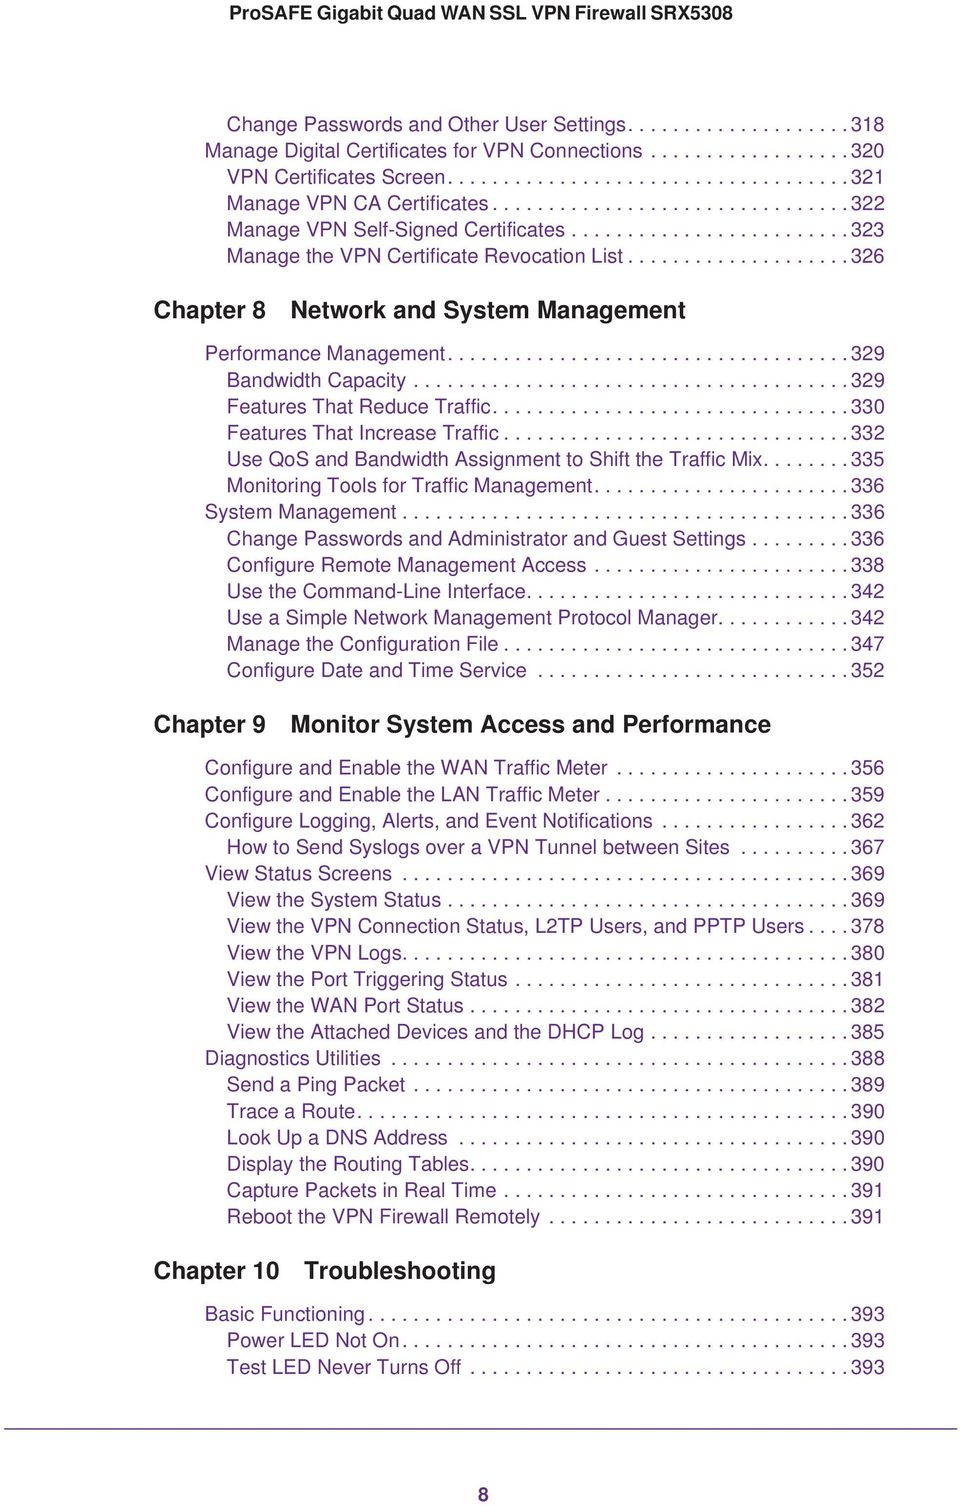 ................... 326 Chapter 8 Network and System Management Performance Management.................................... 329 Bandwidth Capacity....................................... 329 Features That Reduce Traffic.